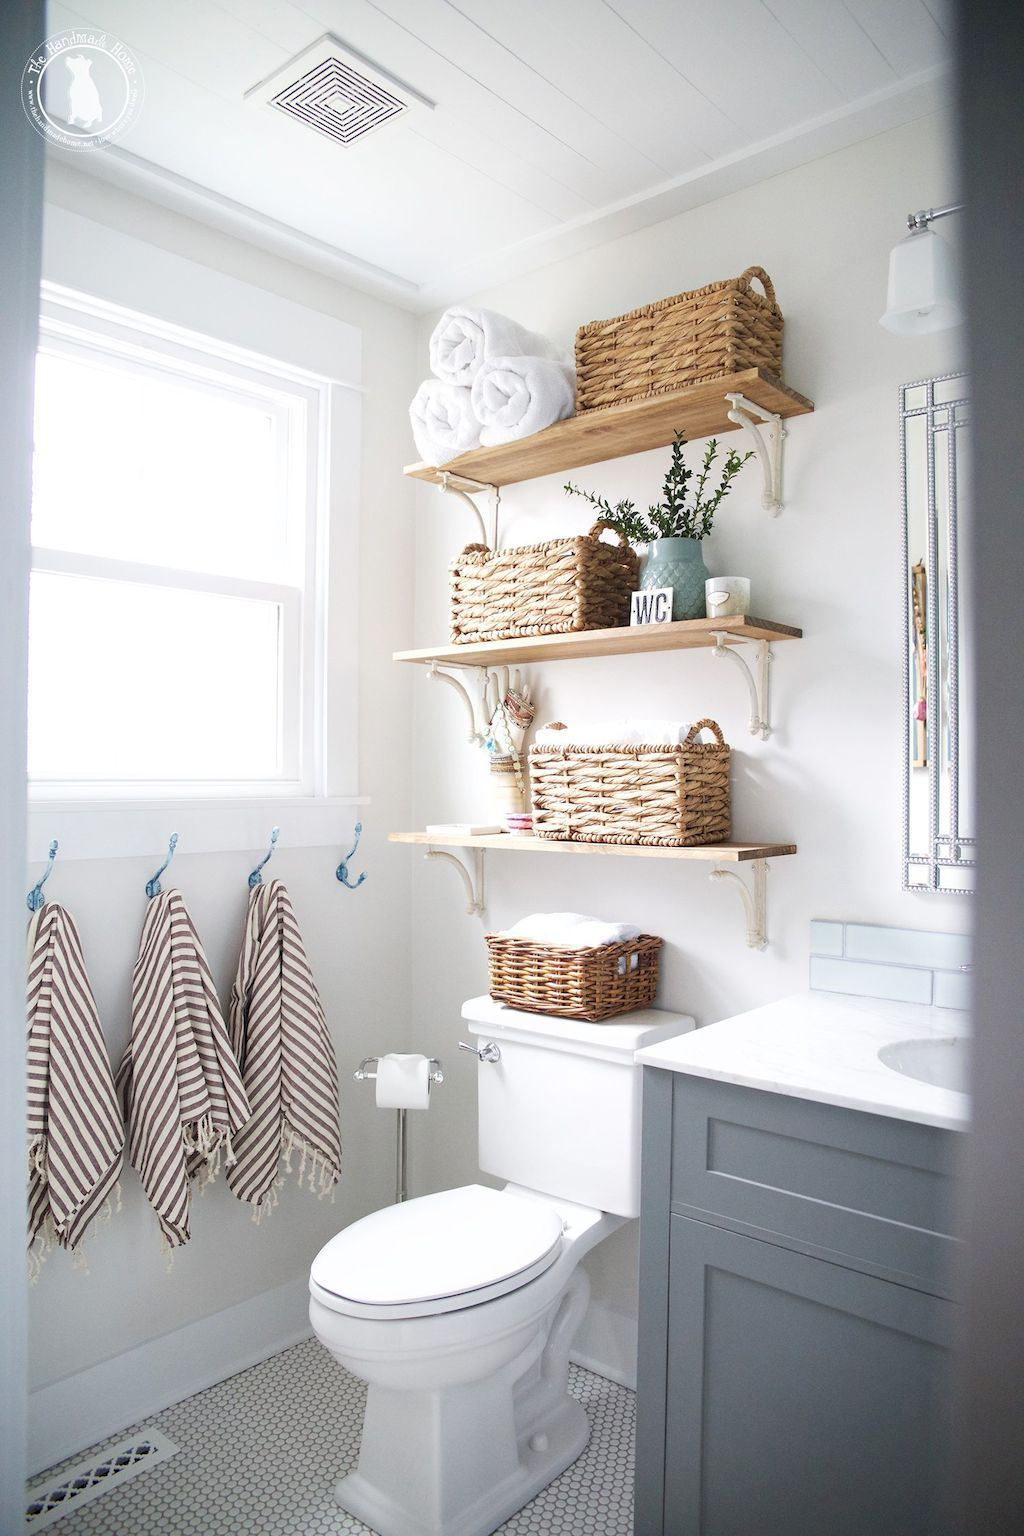 40 Graceful Tiny Apartment Bathroom Remodel Ideas on A Budget ...